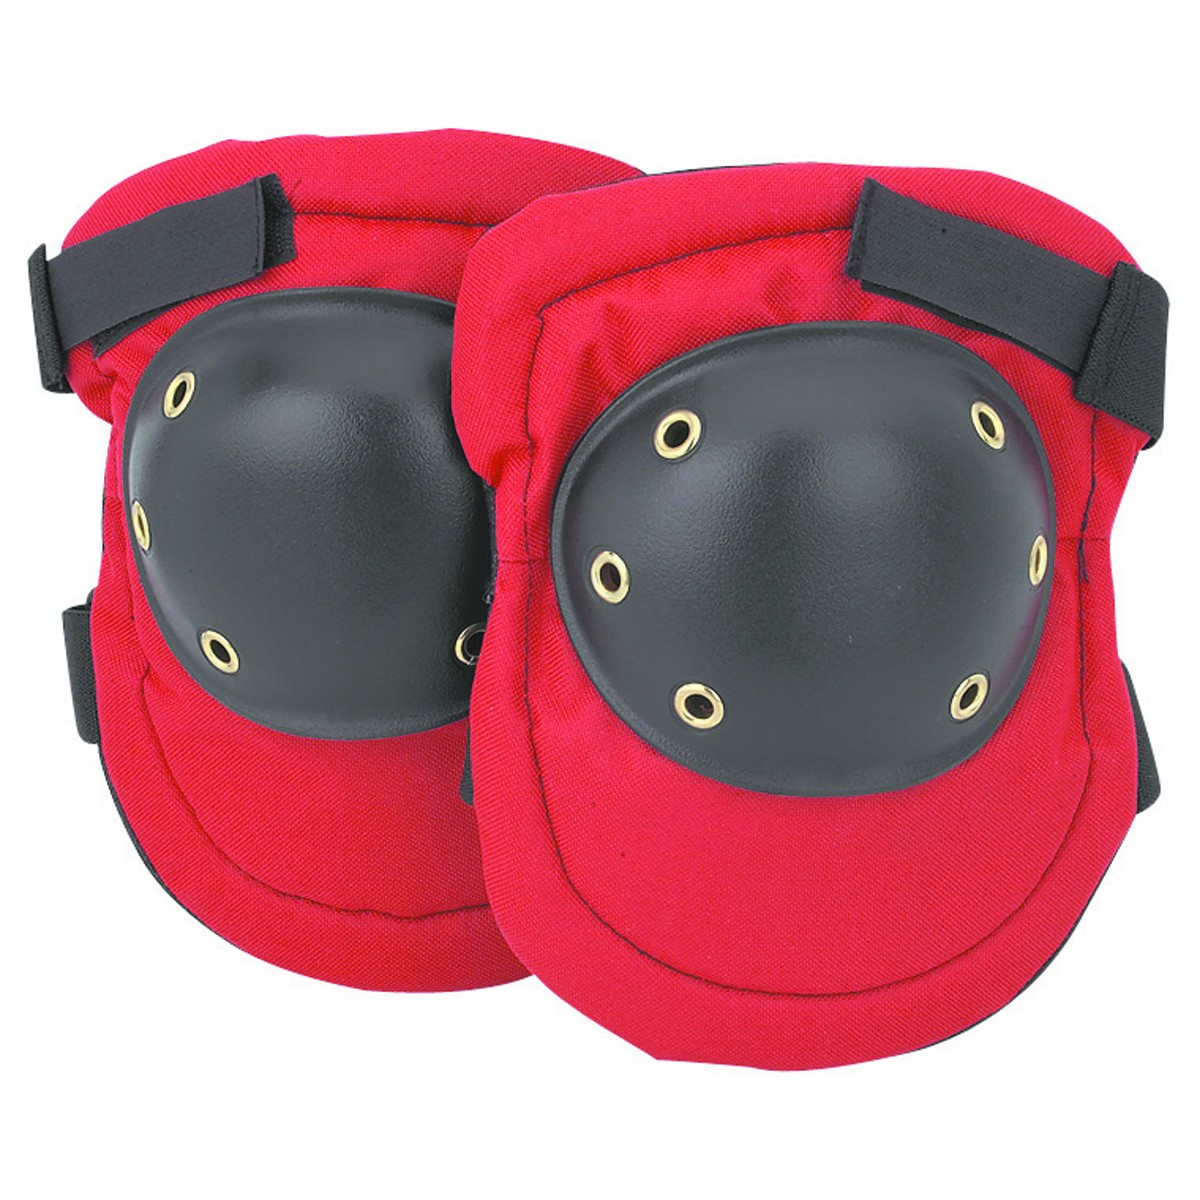 Black Cap Knee Pads